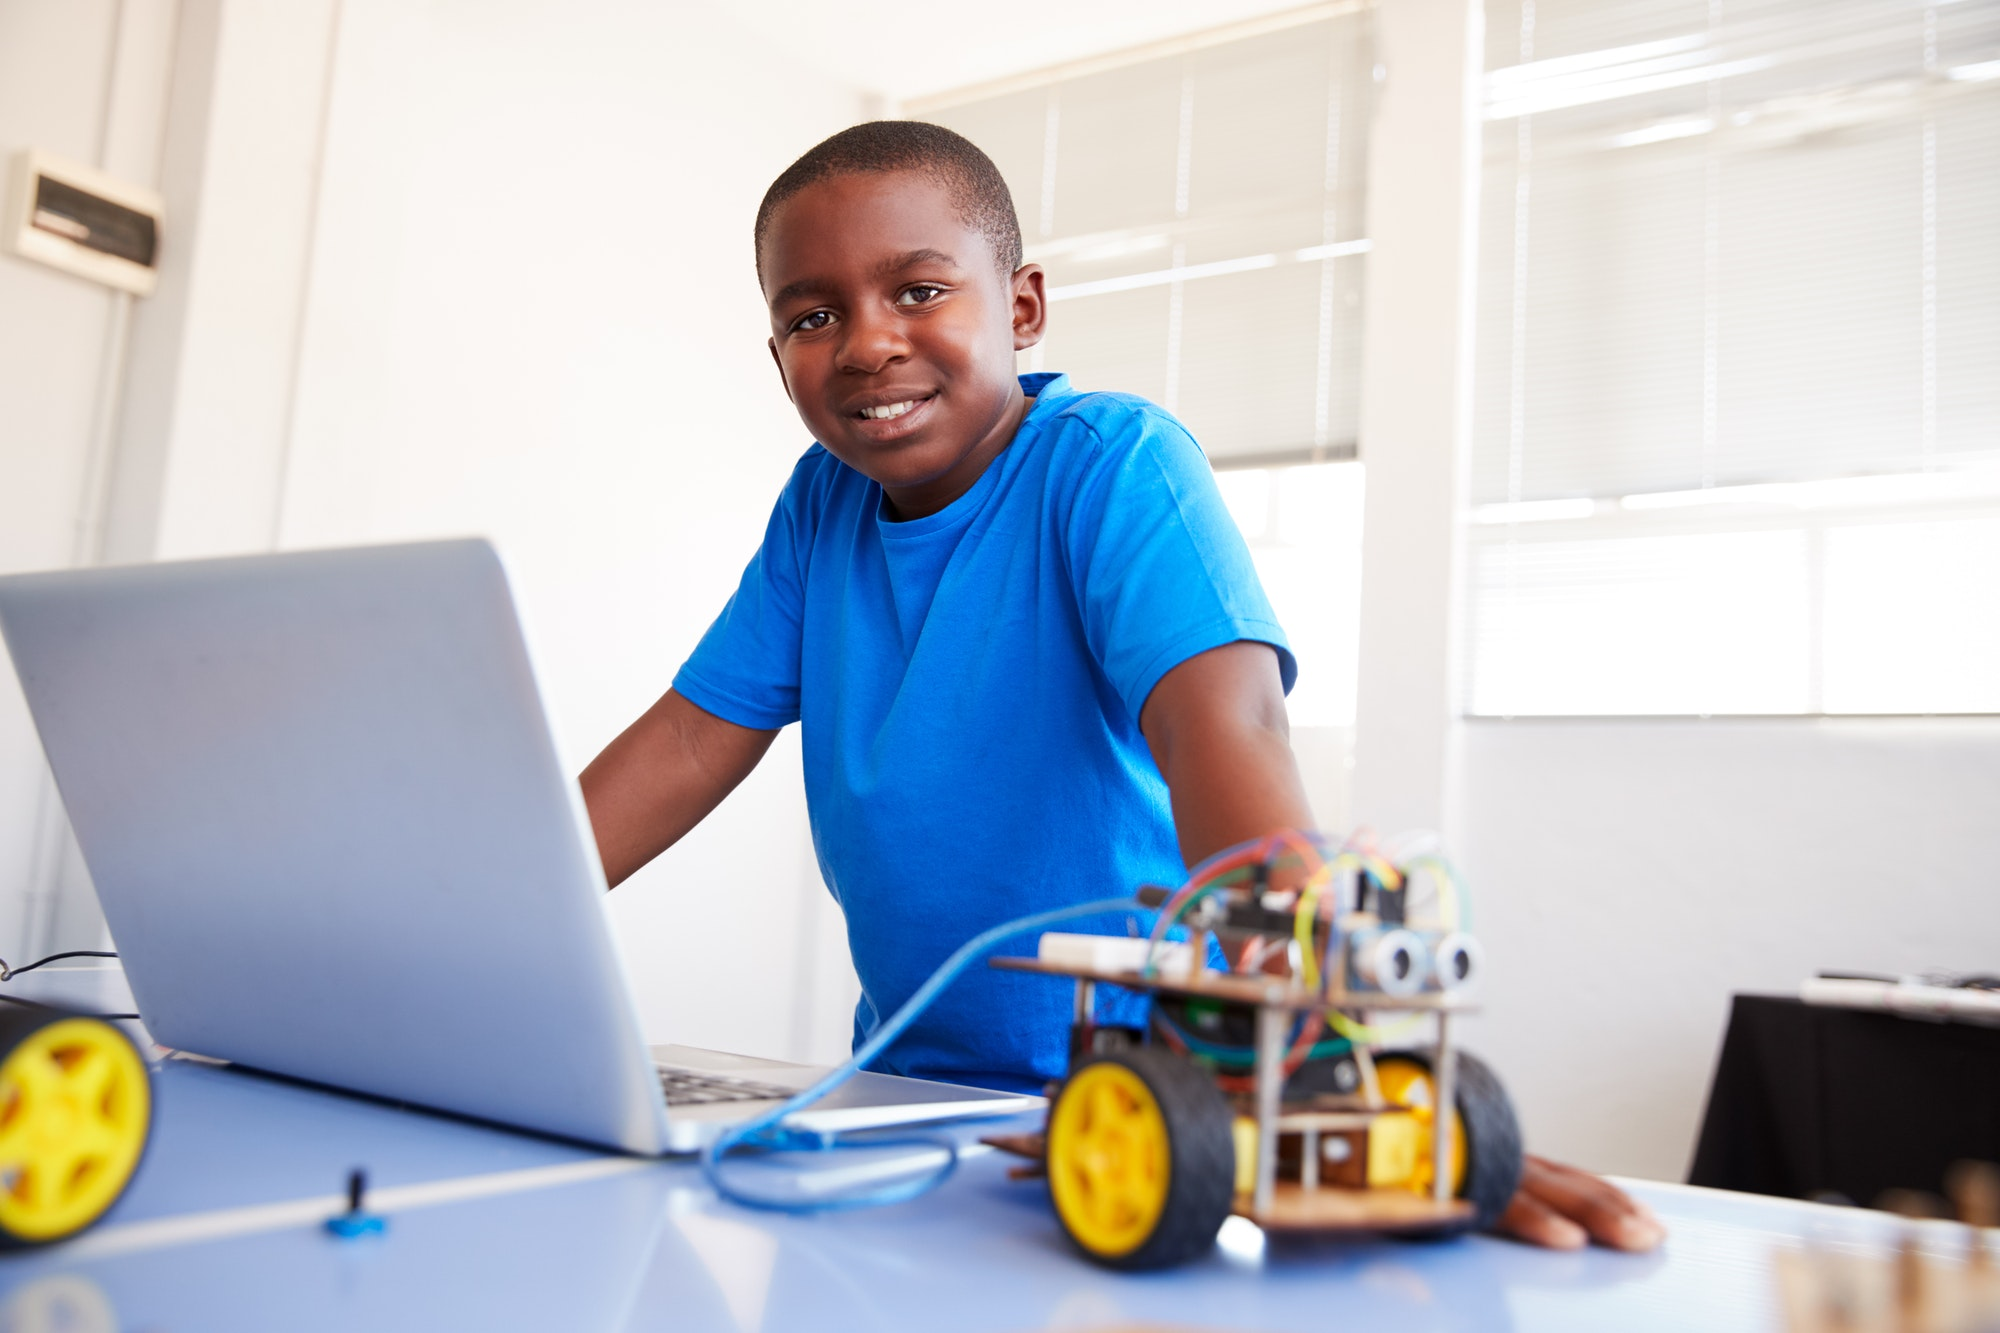 portrait-of-male-student-building-and-programing-robot-vehicle-in-school-computer-coding-class.jpg